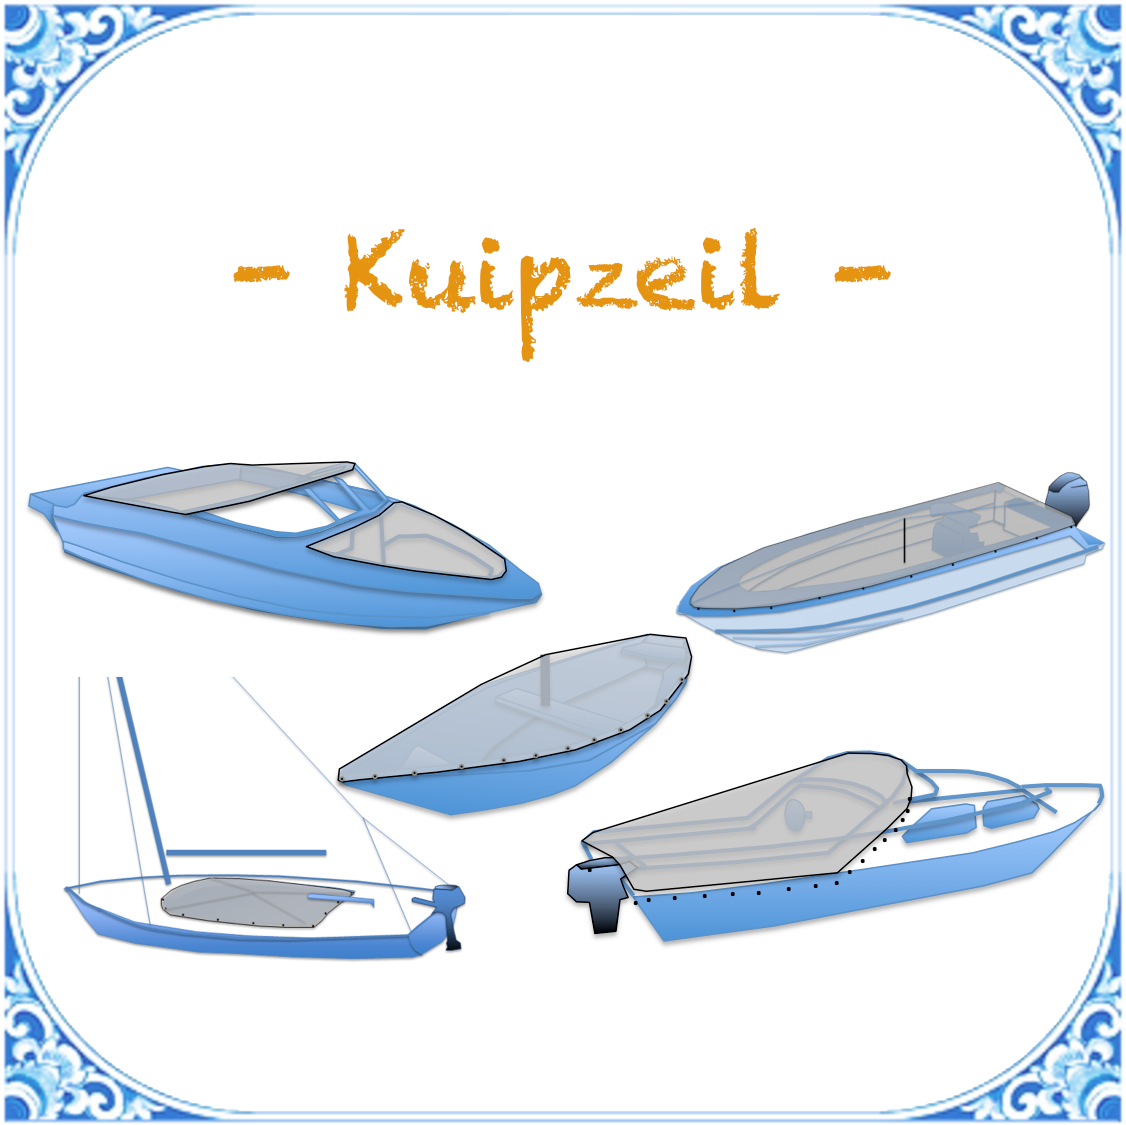 kuipzeil open boot zeilboot speedboot open bow